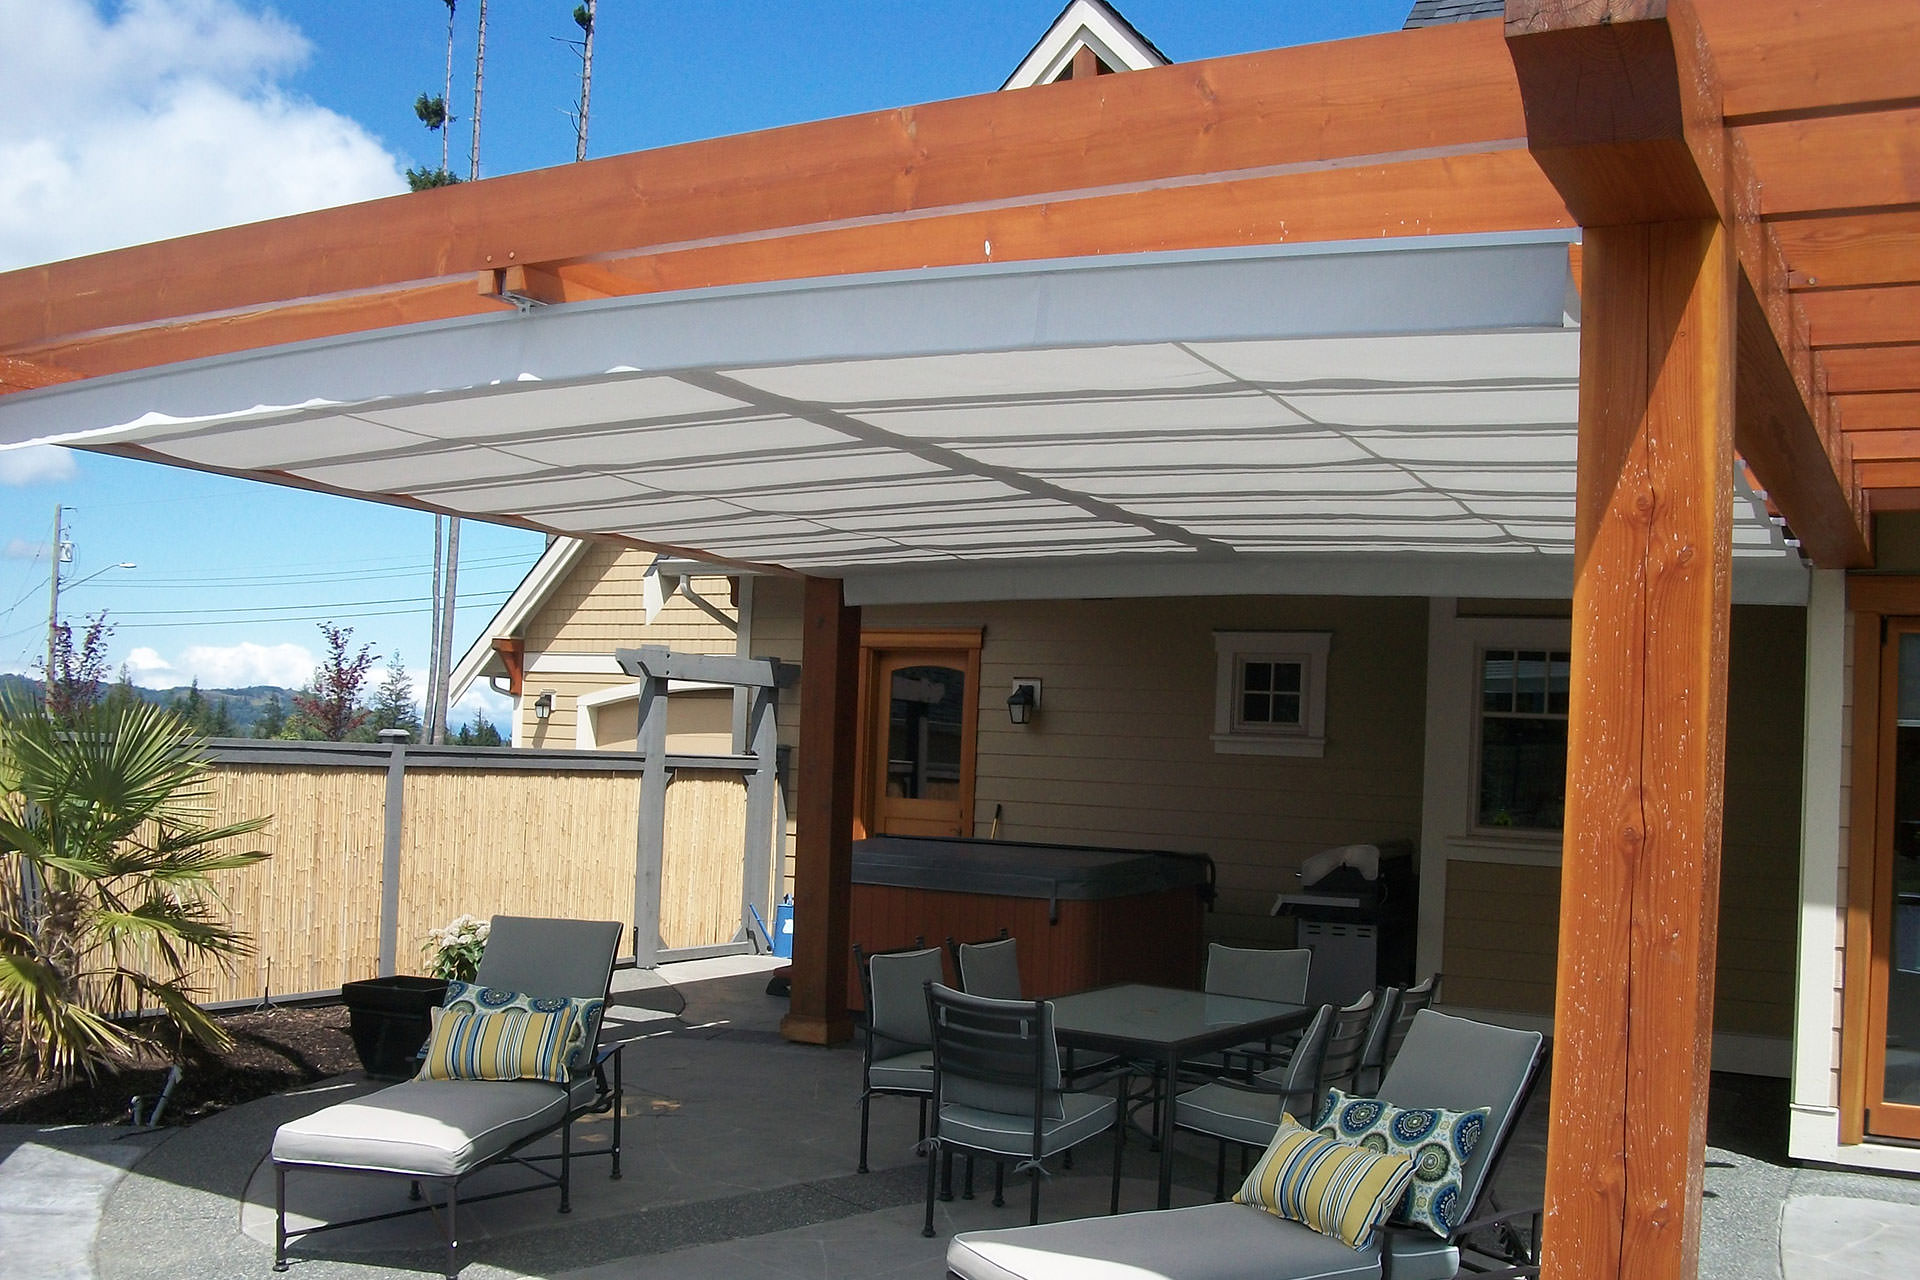 & Staying On Track - Retractable Canopy Track Systems